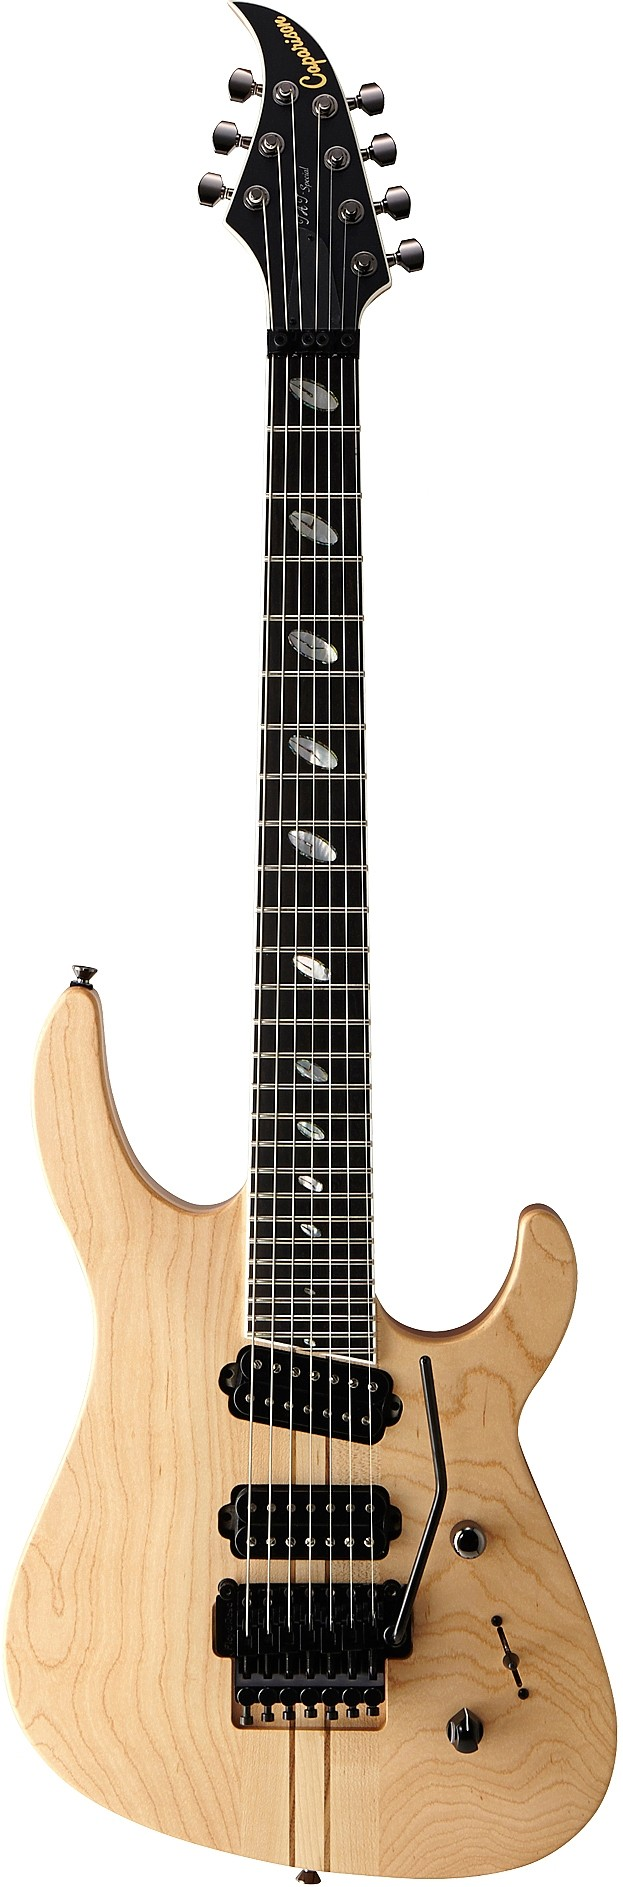 TAT Special 7 by Caparison